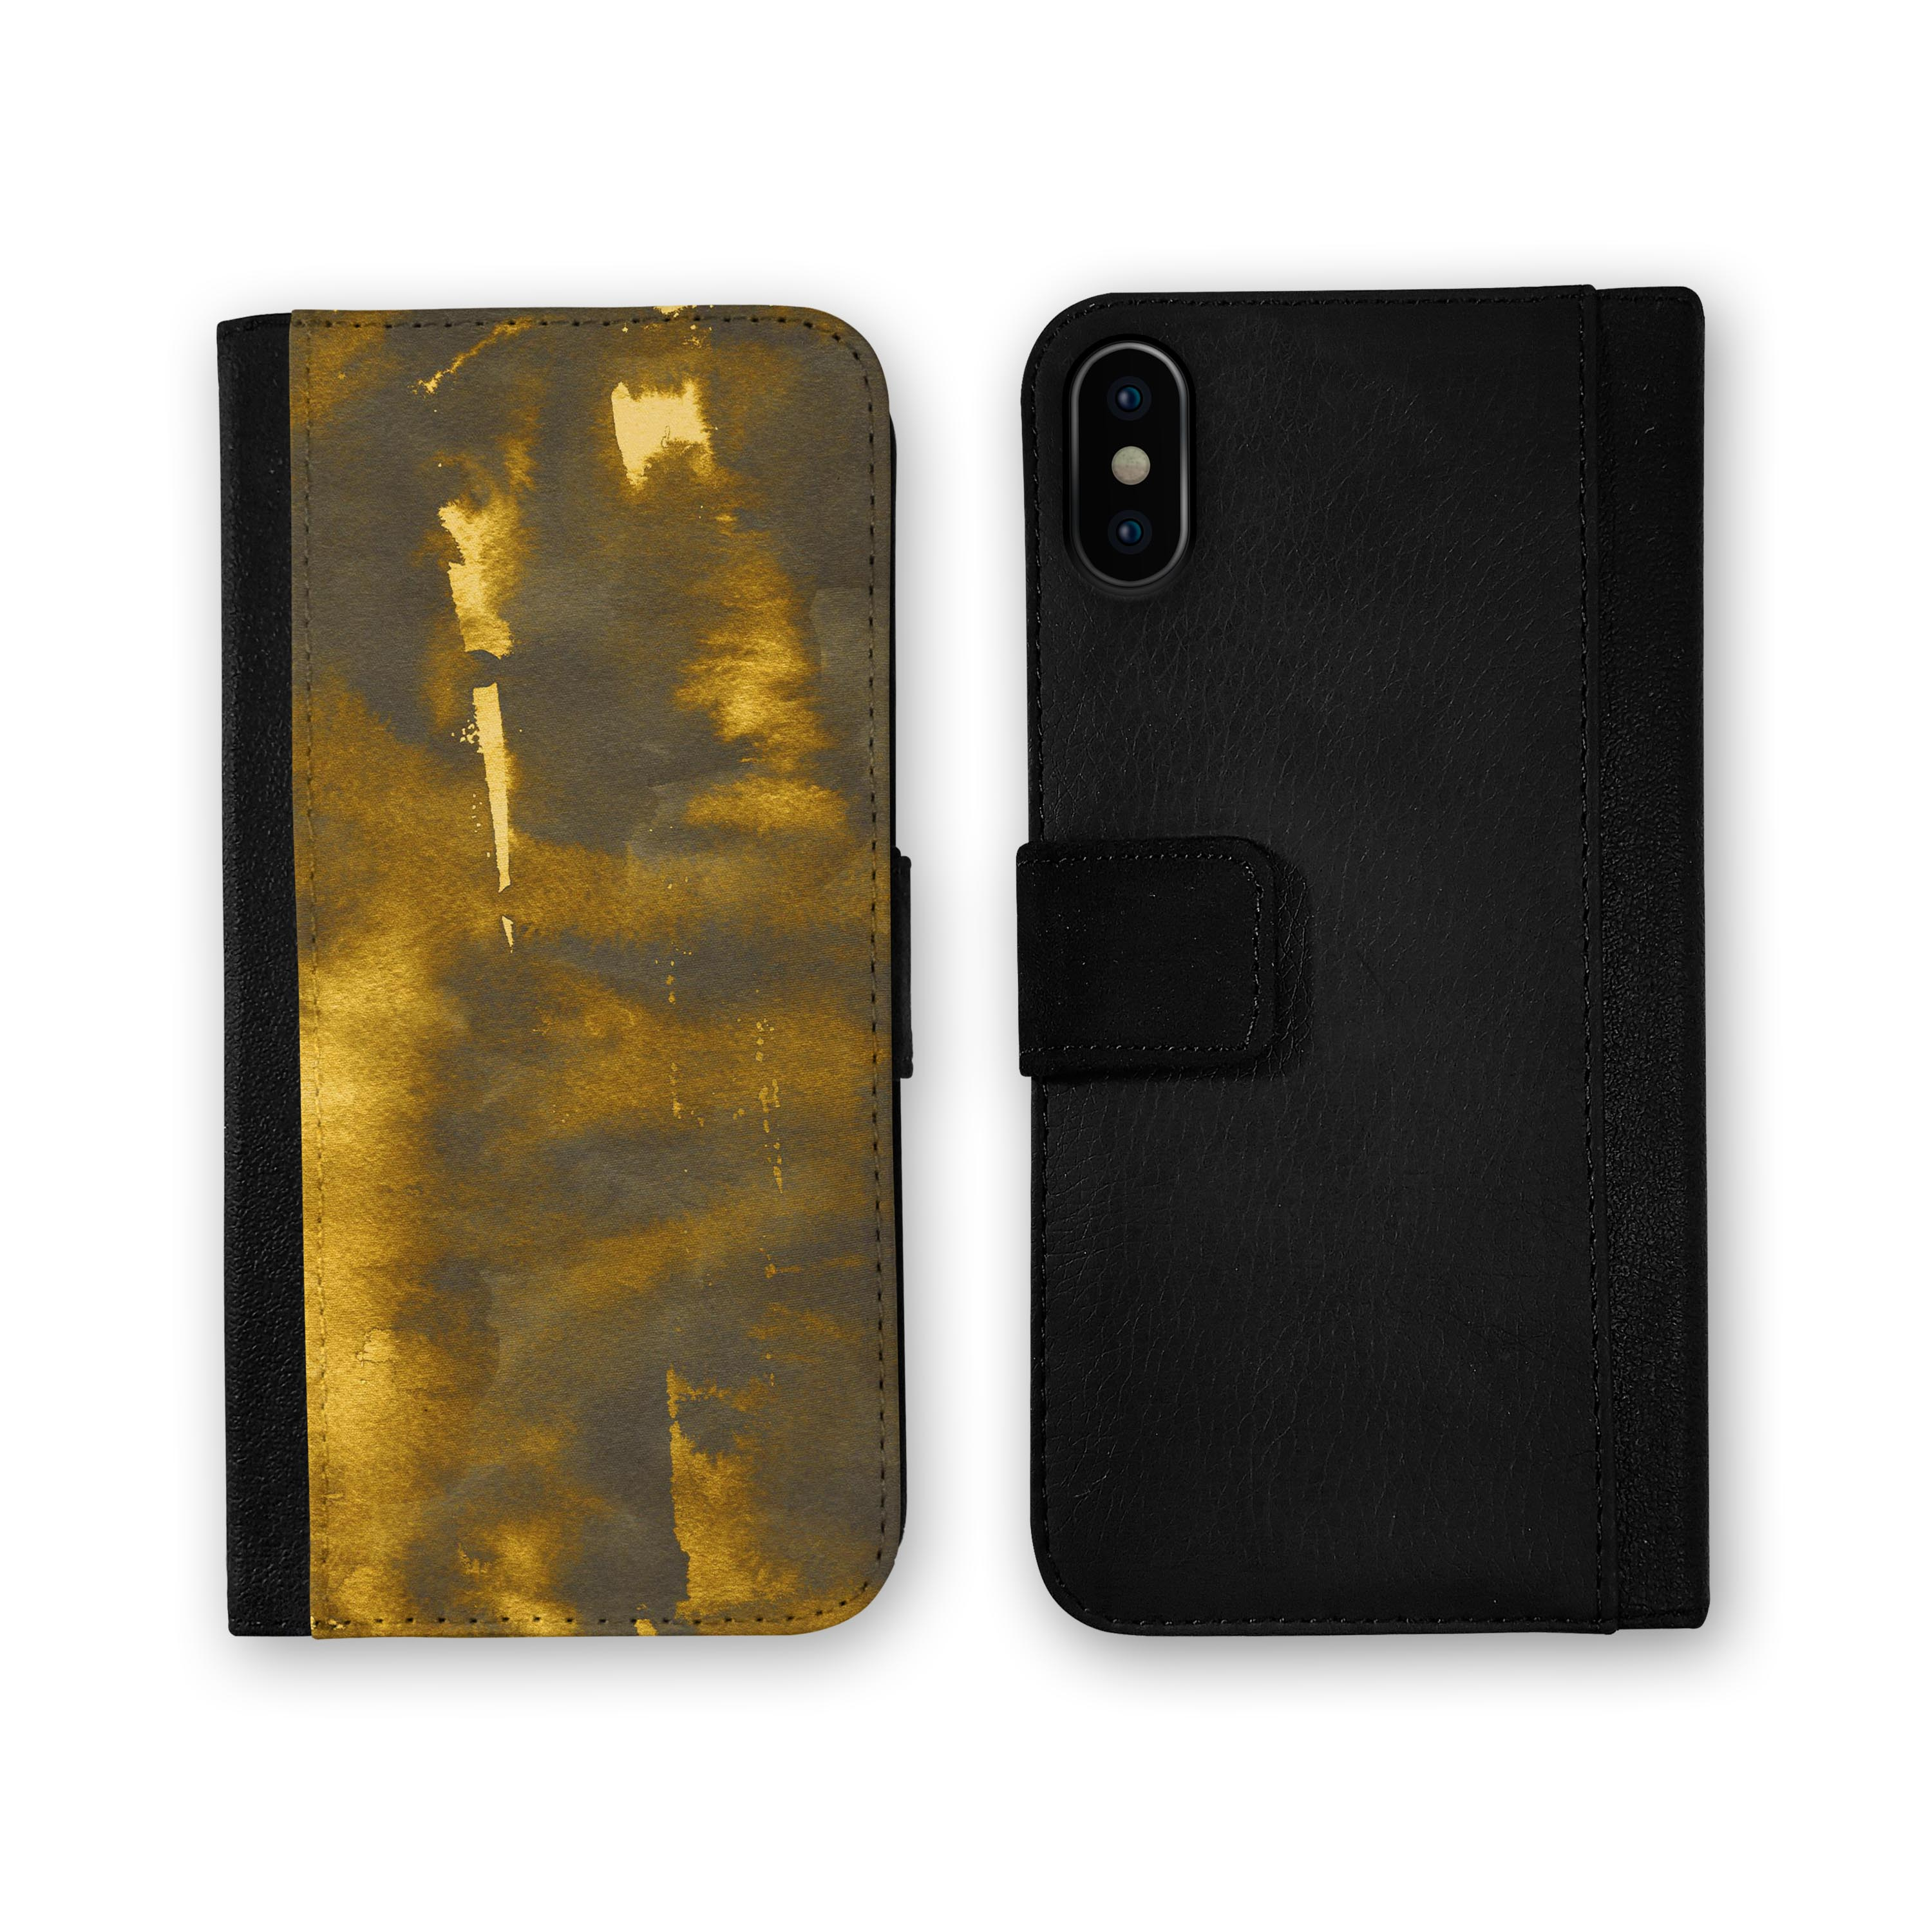 Details about Grunge Golden Hour iPhone Leather Credit Card Wallet Case